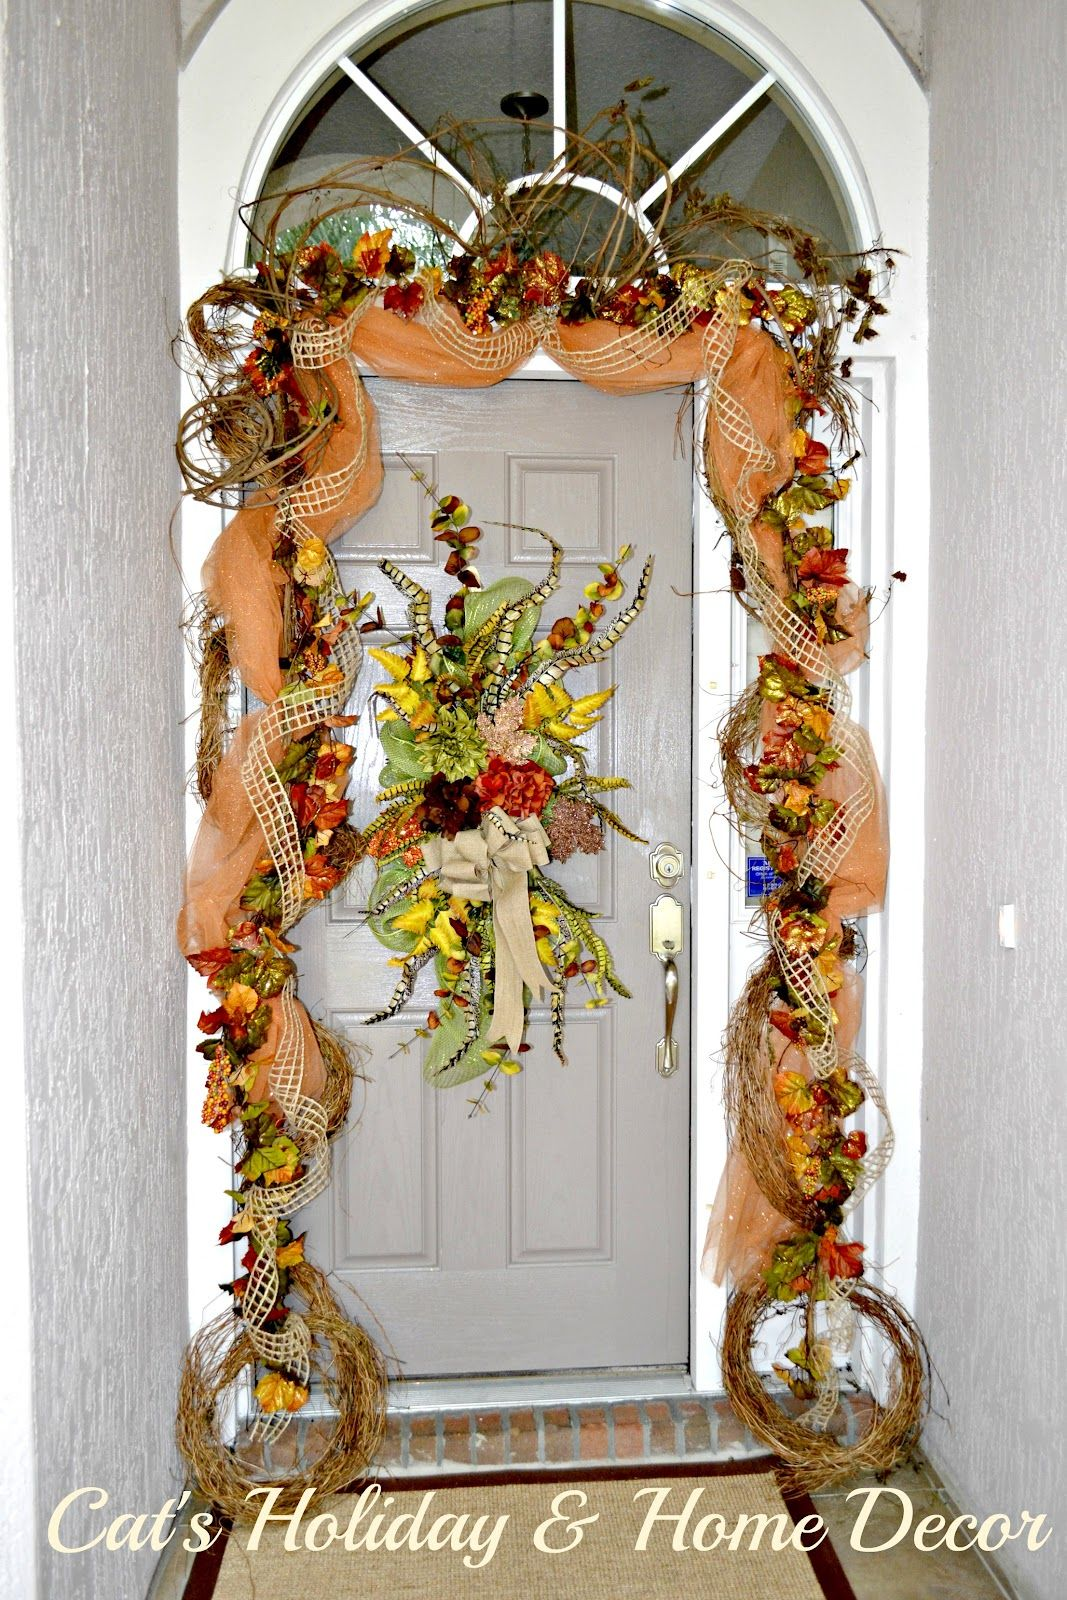 Grape vine for crafts - Decorating With Grapevine Garland Cat S Holiday Home Decor Musings